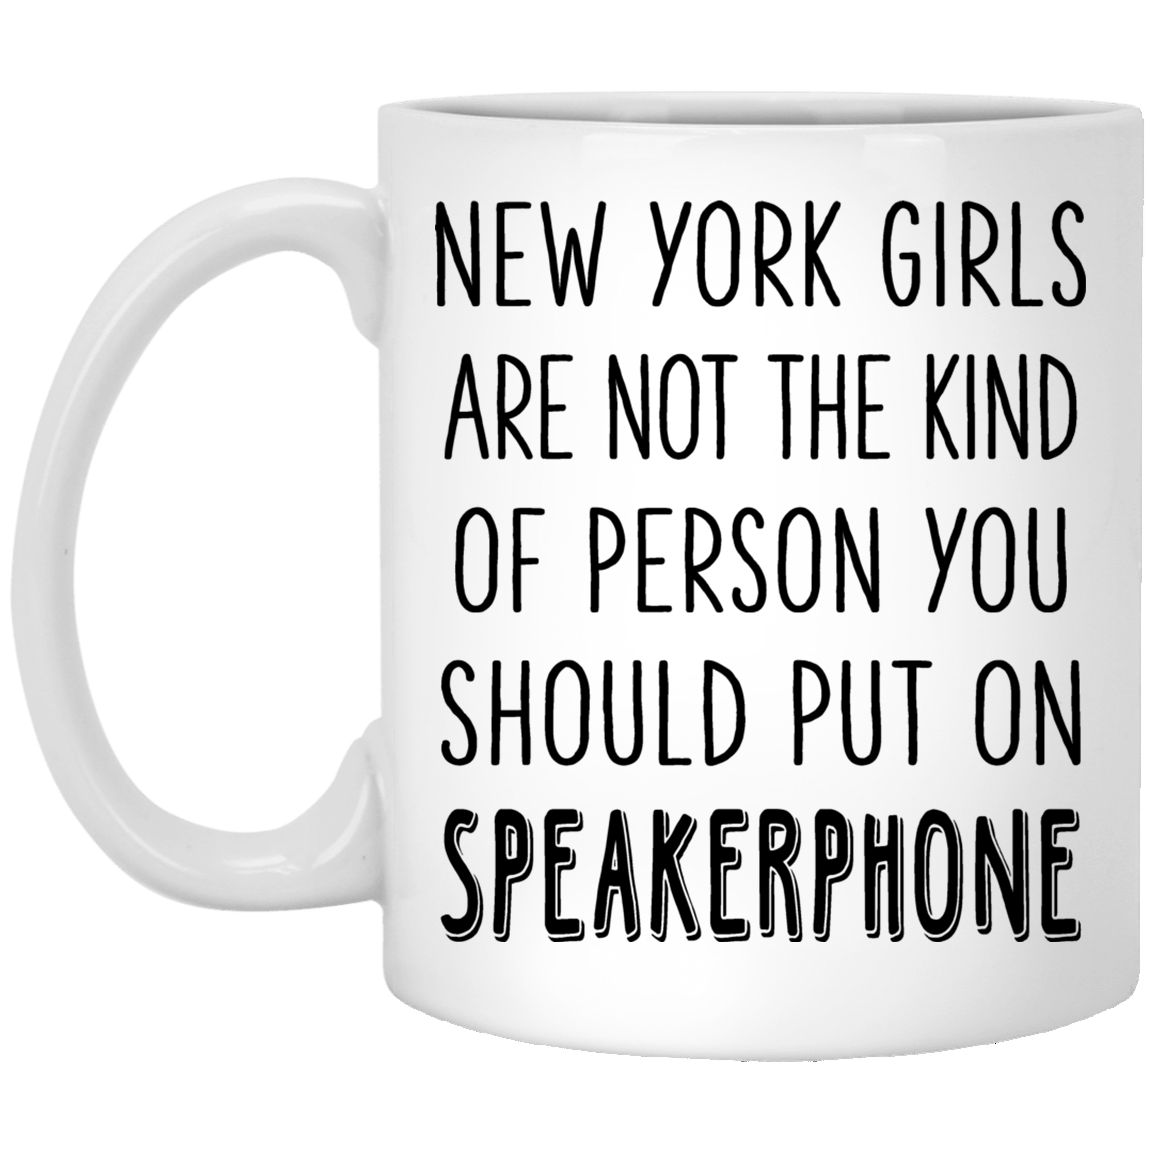 NEW YORK GIRLS ARE NOT THE KIND OF PERSON YOU SHOULD PUT ON SPEAKER